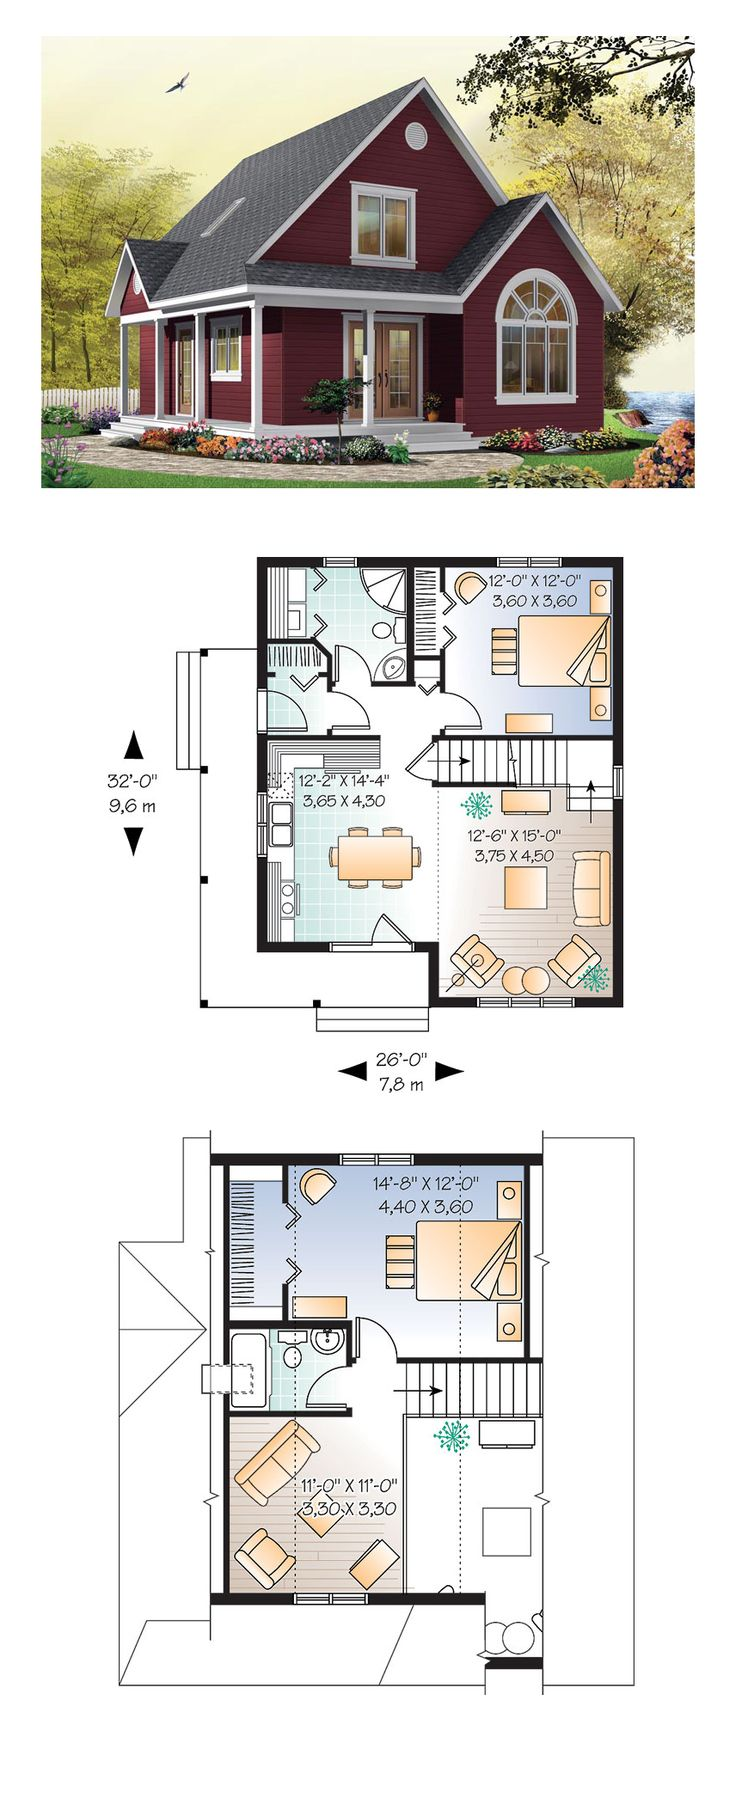 cottage style cool house plan id chp 28554 total living area 1226 - Tiny House Layout Ideas